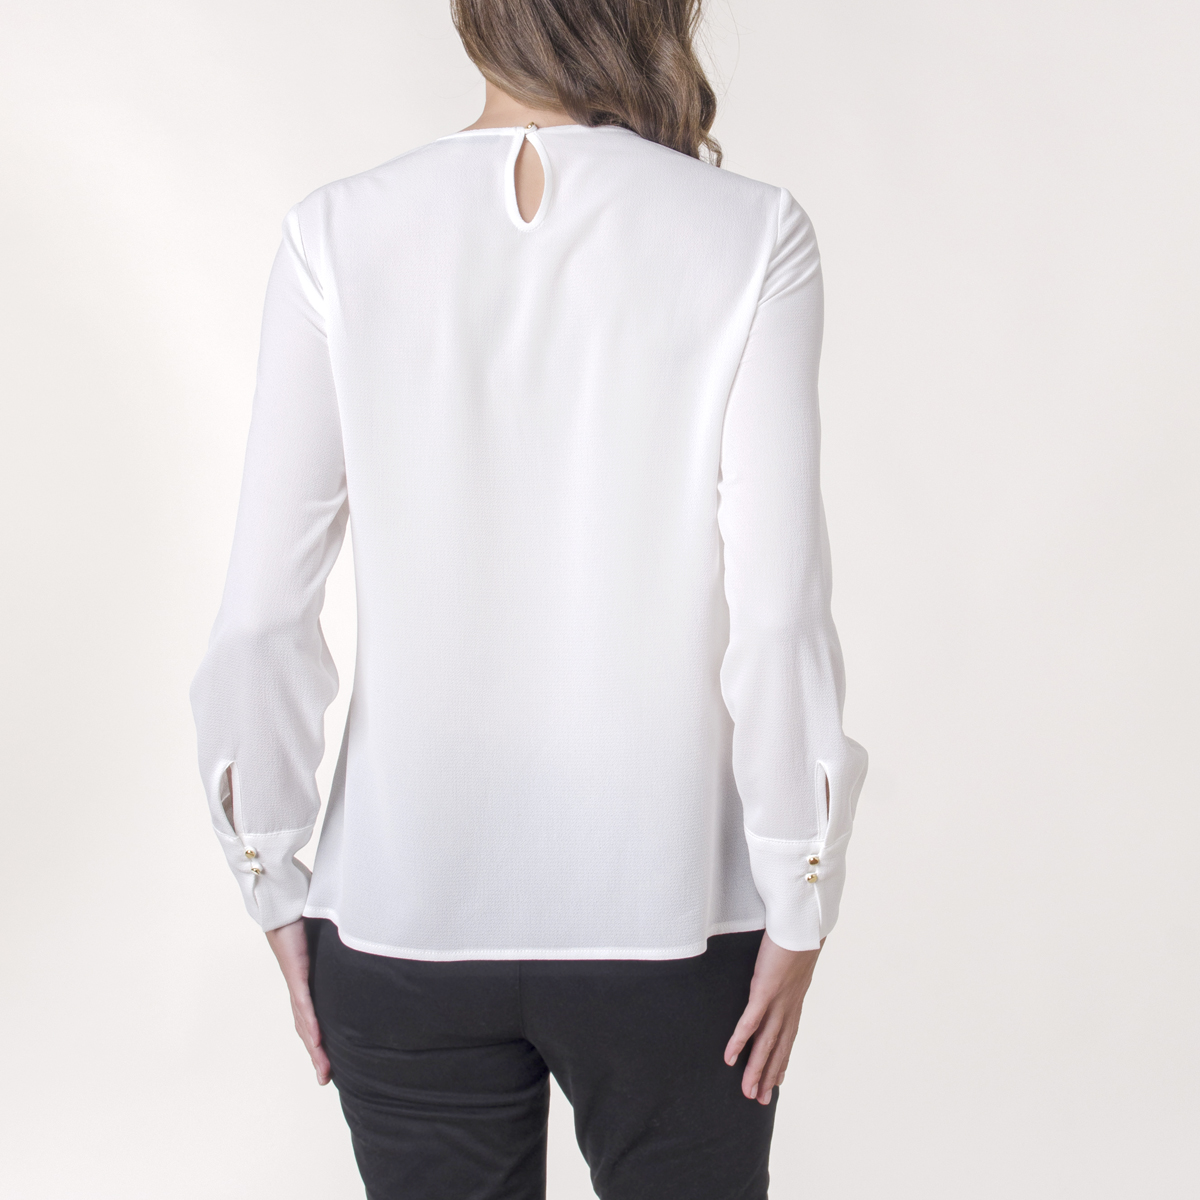 Blusa Cocktail Manga Larga Cuello Redondo